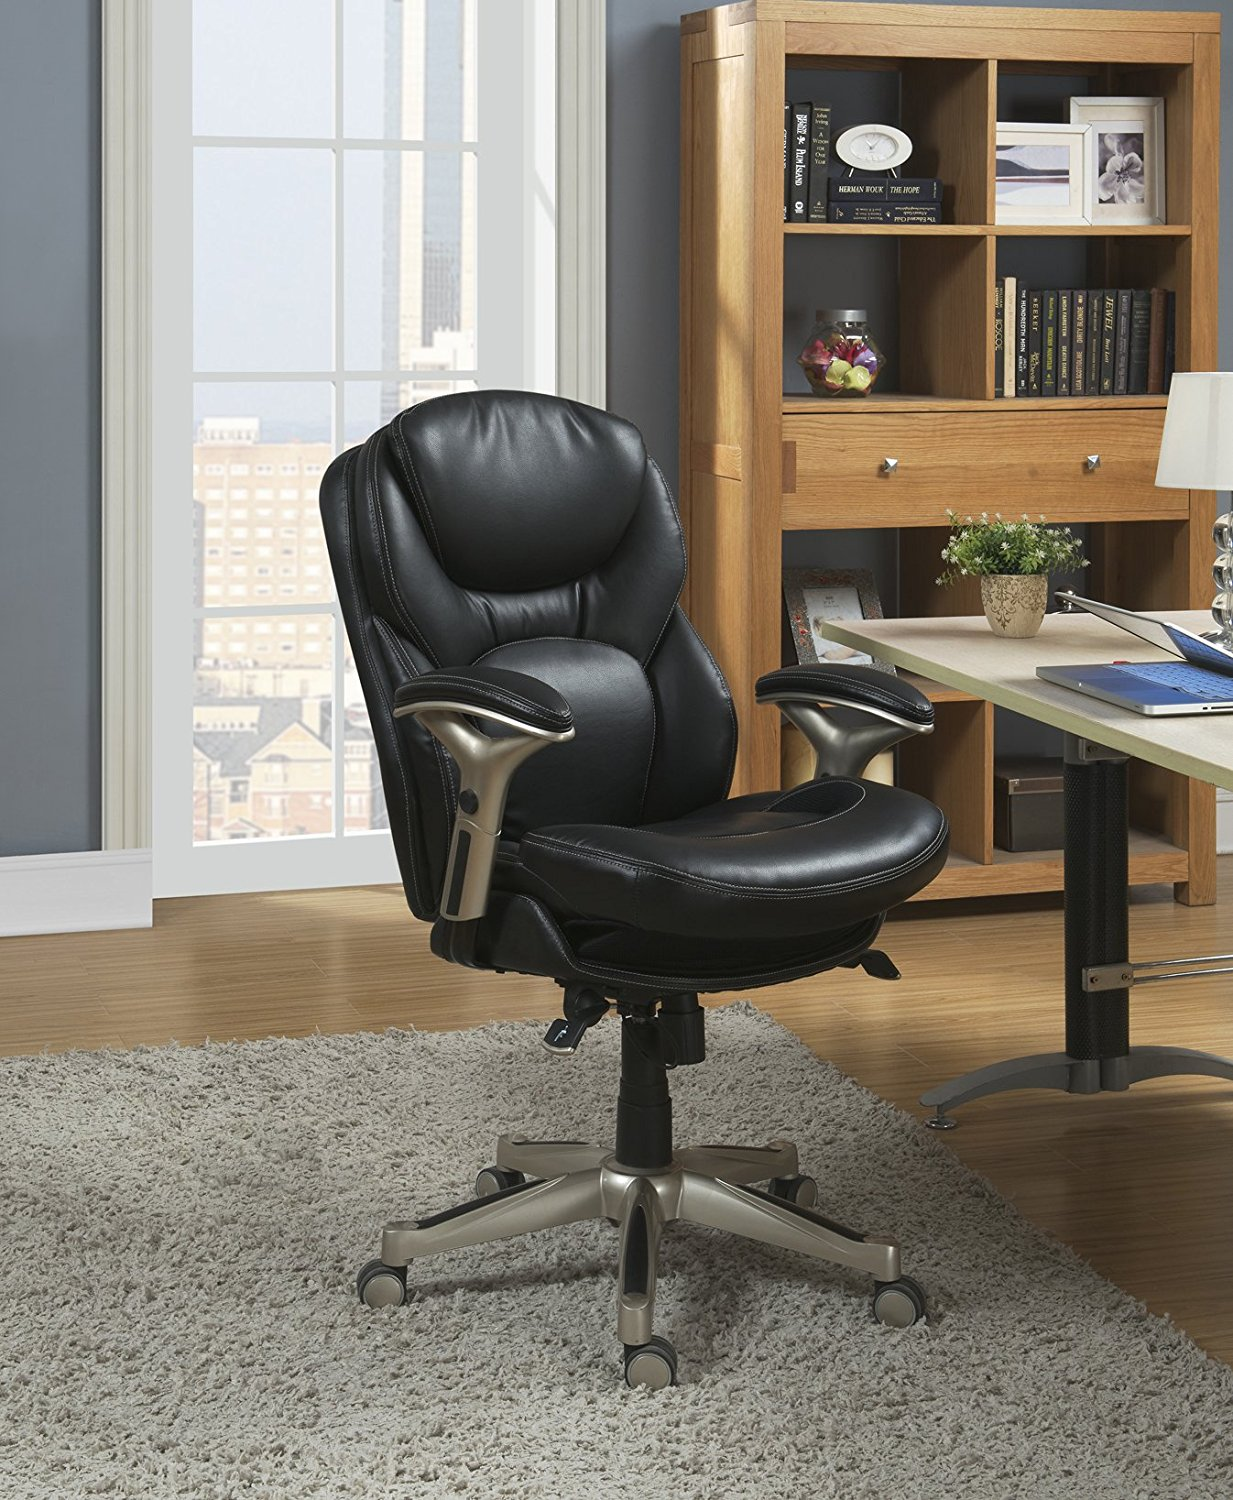 Serta Back in Motion MidBack Office Chair Review